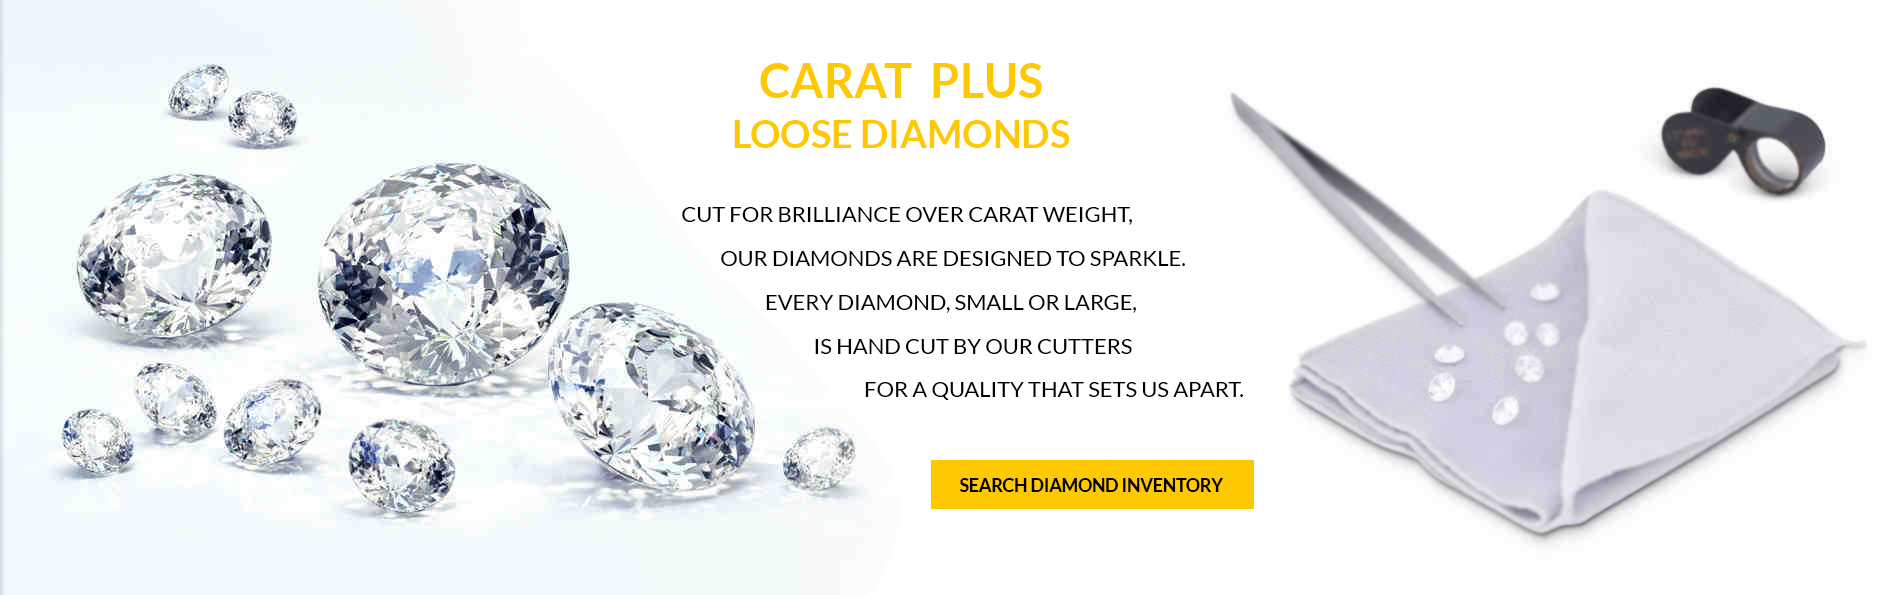 weight typical diamonds all have diamond pair glitters our certed customers that uk carat savings seen htm egl